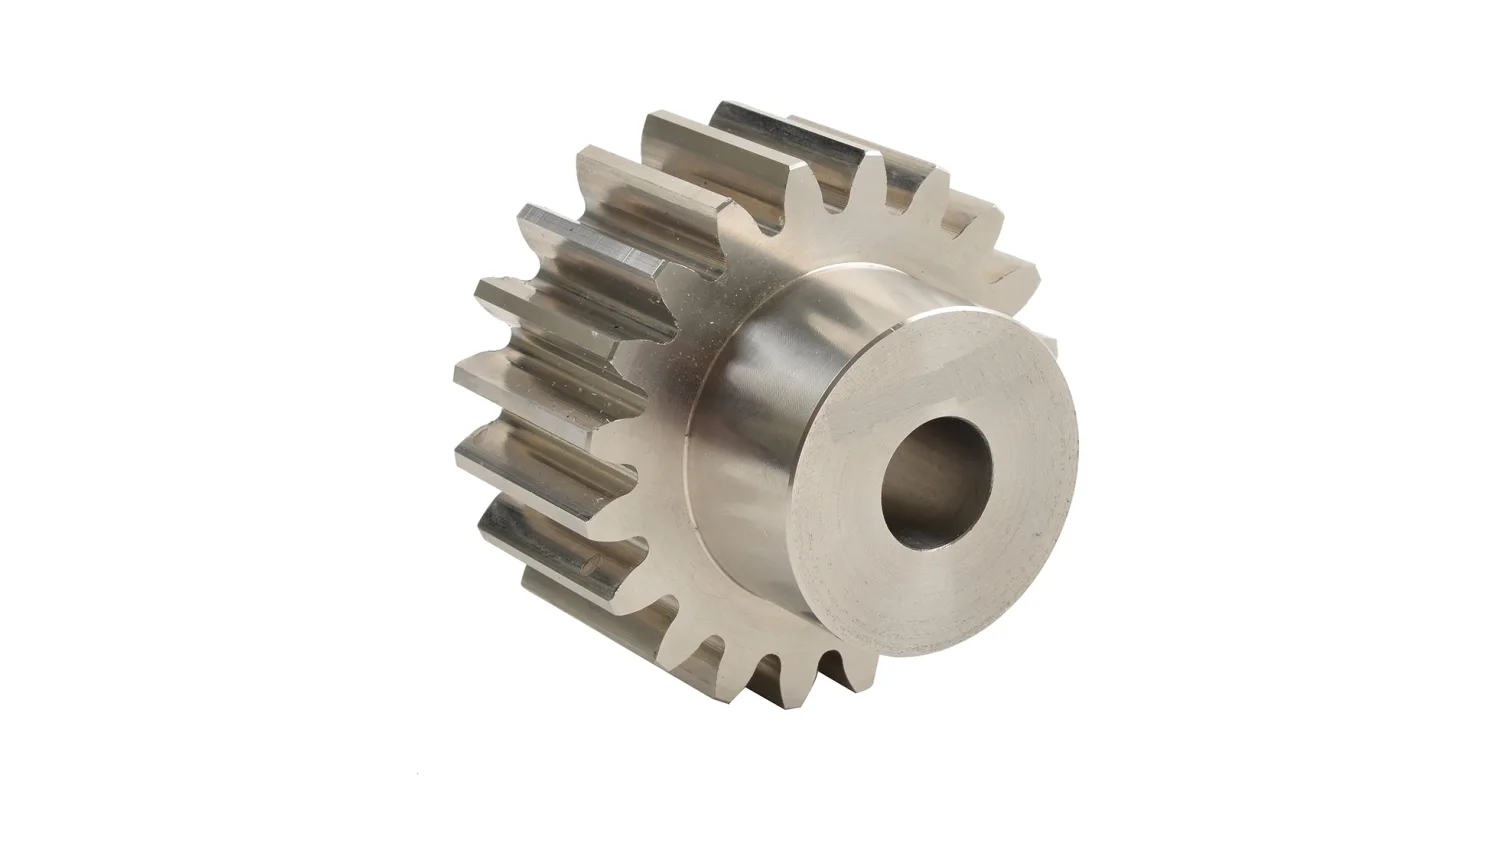 4-Mod-x-14-Tooth-Metric-Spur-Gear-in-Steel